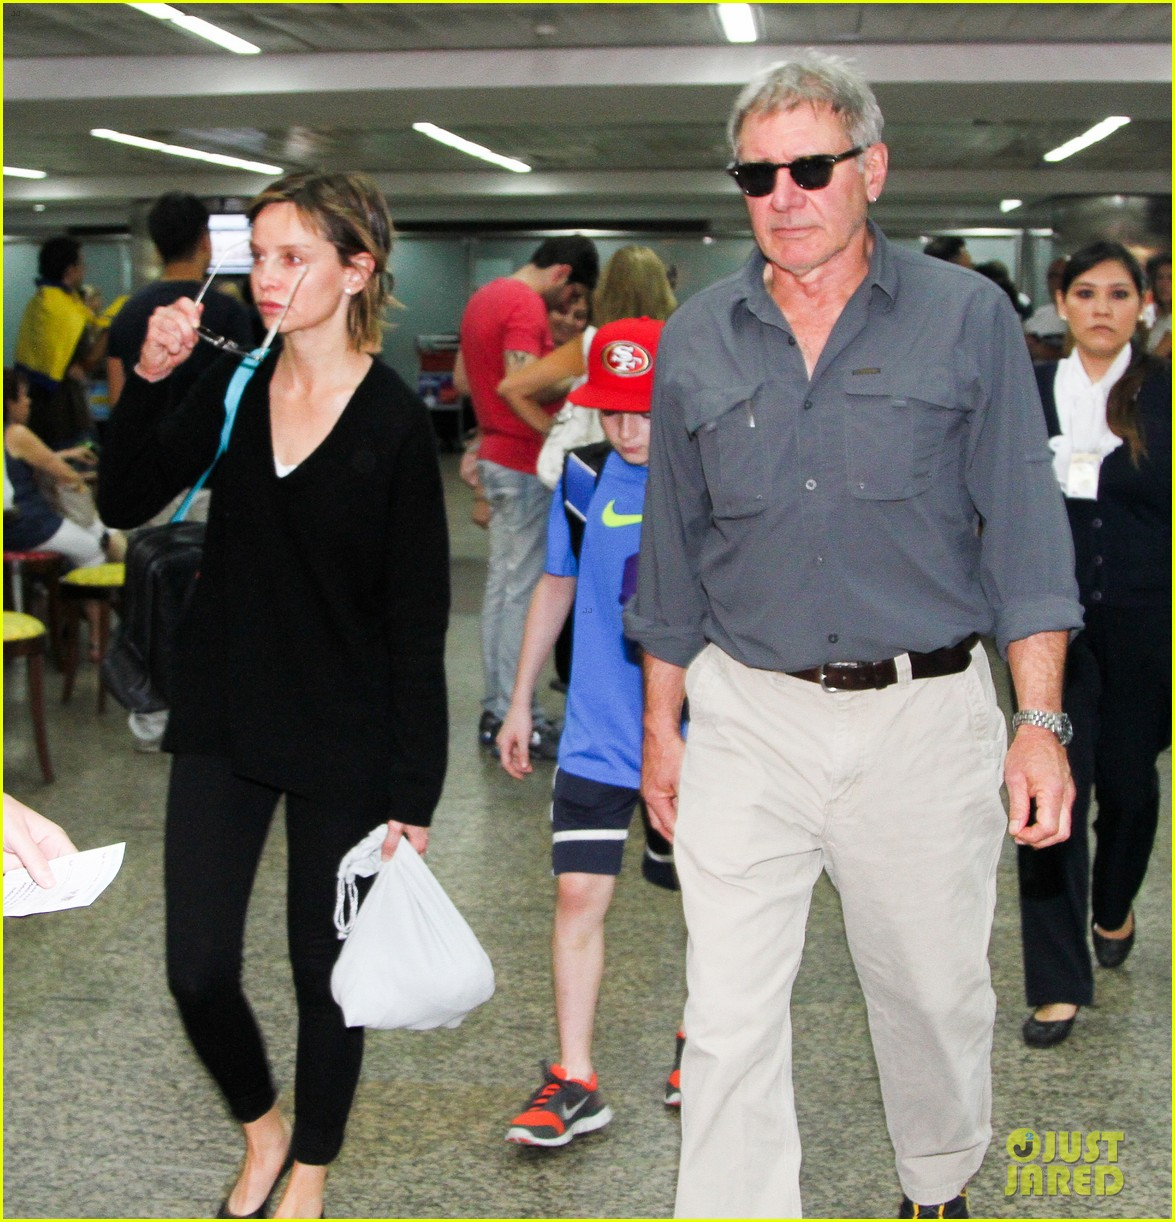 harrison ford family vacation after star wars 7 news 10